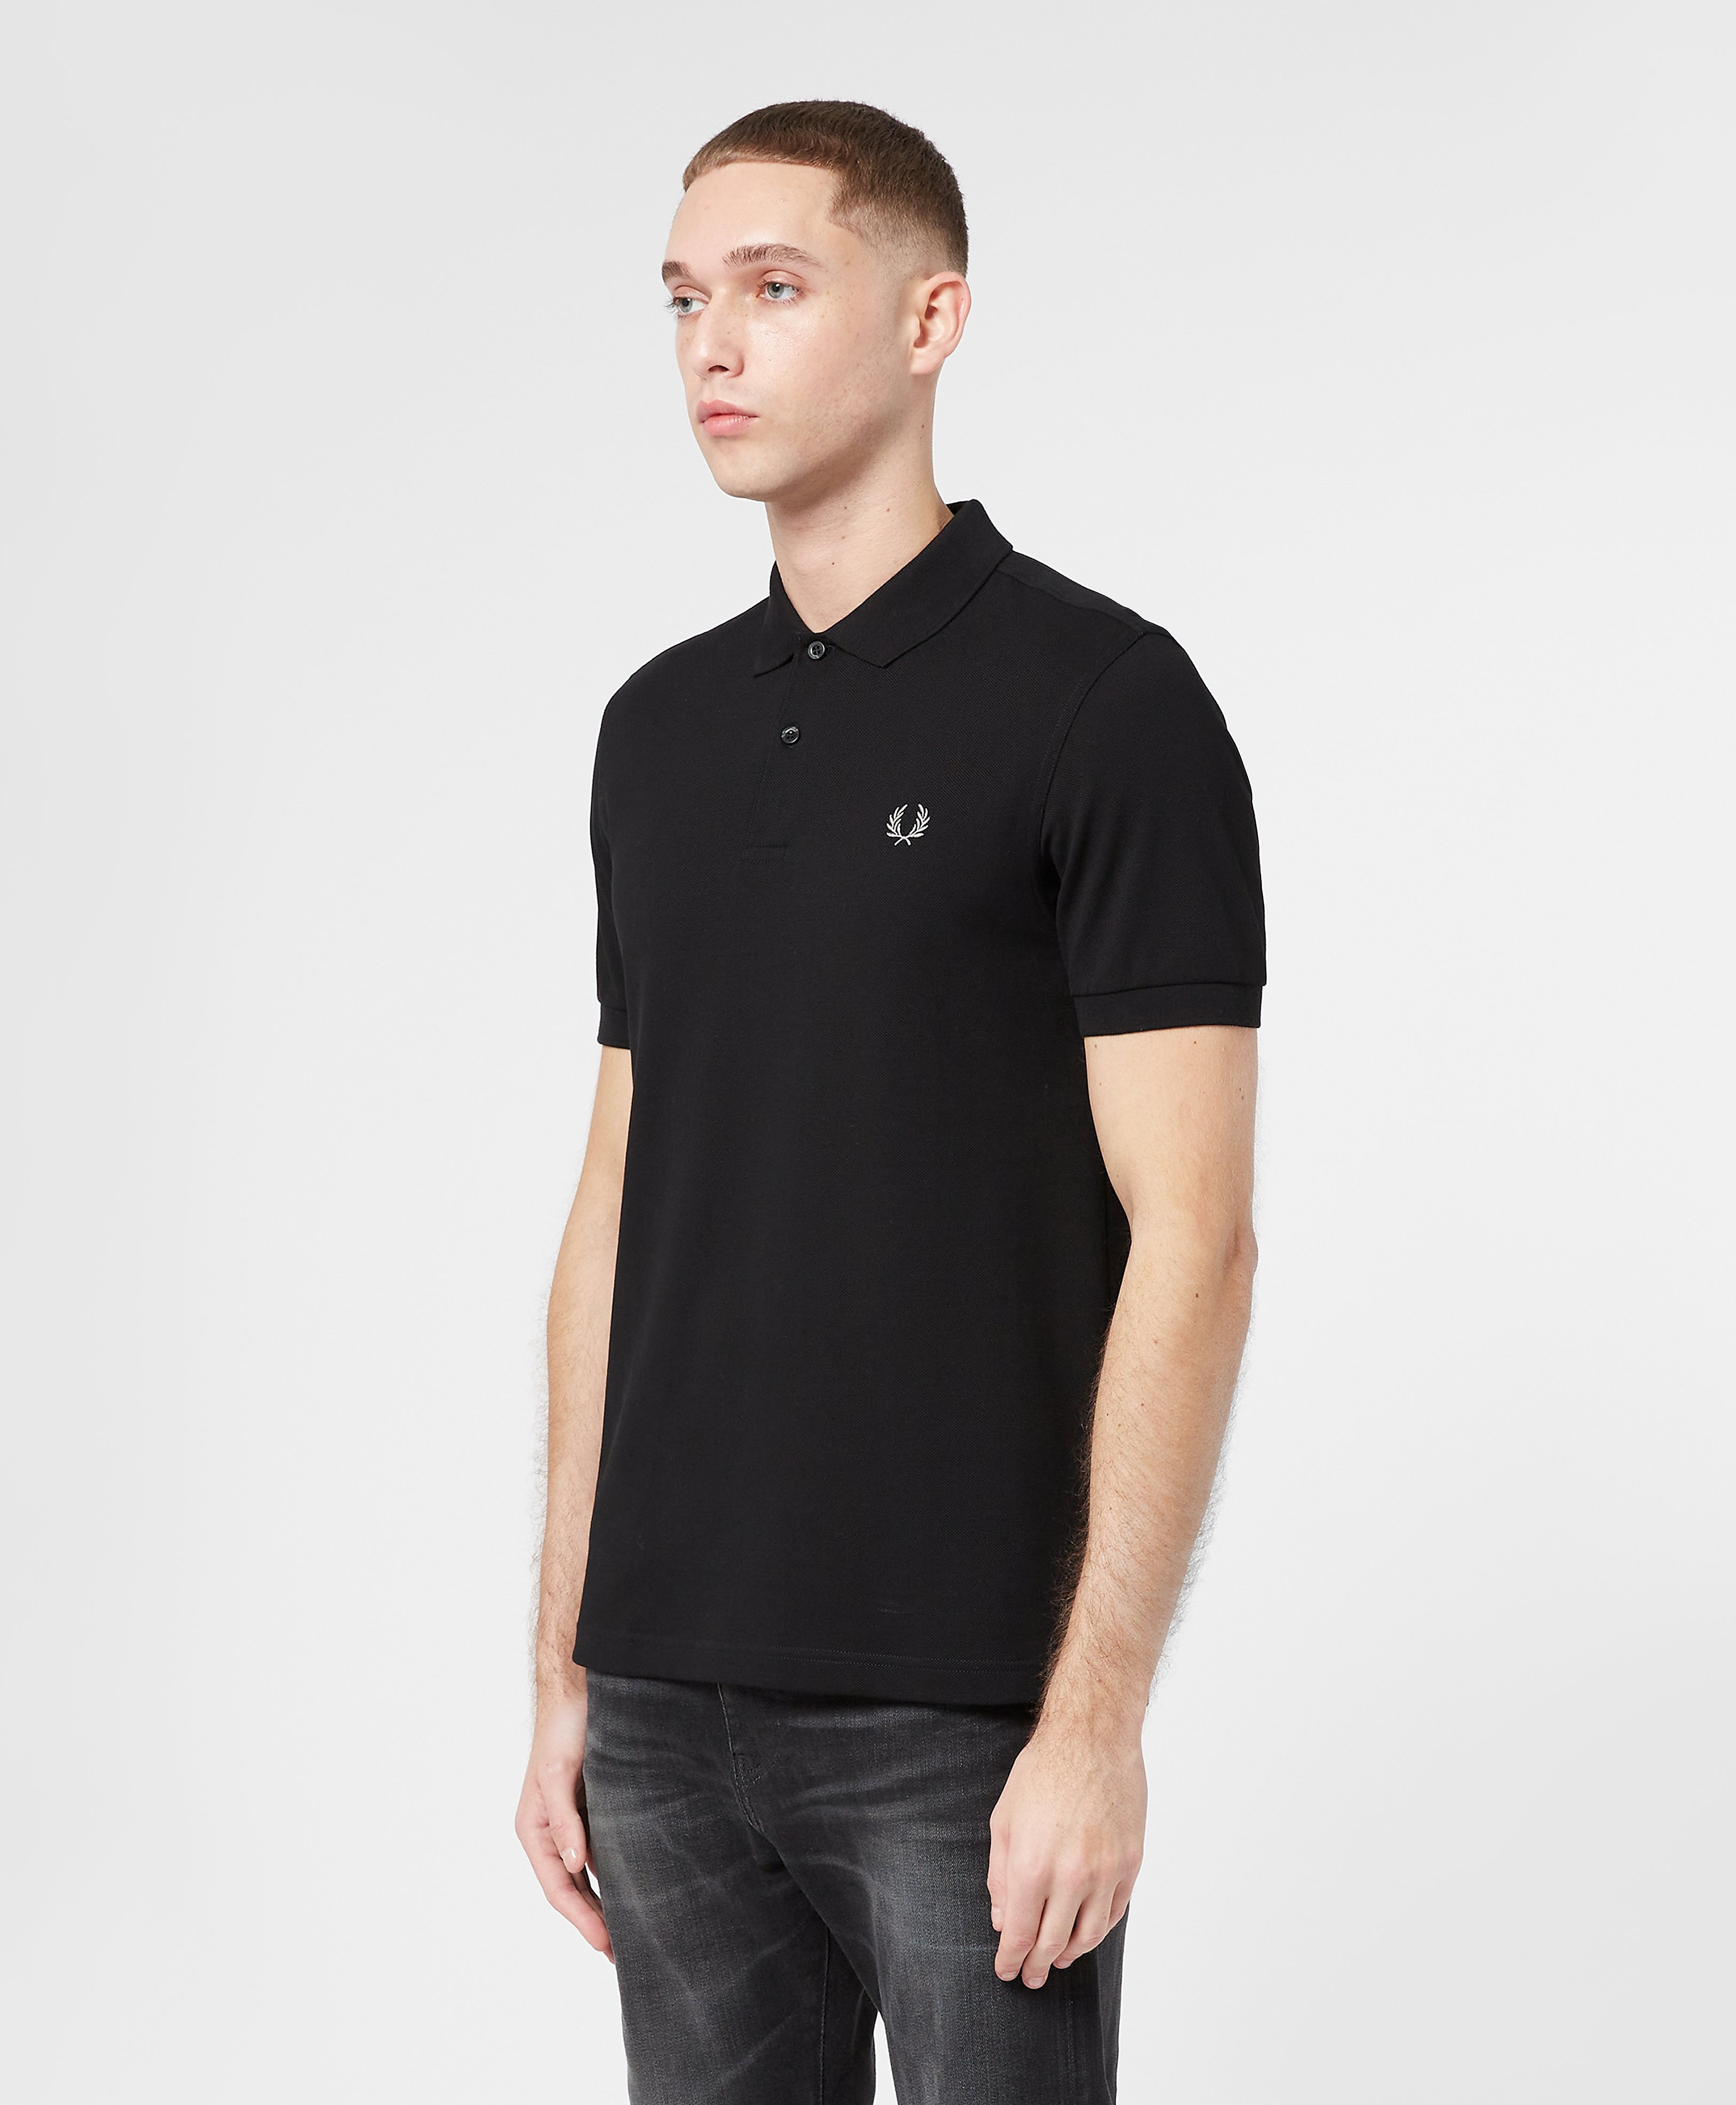 Fred Perry Plain Short Sleeve Polo Shirt